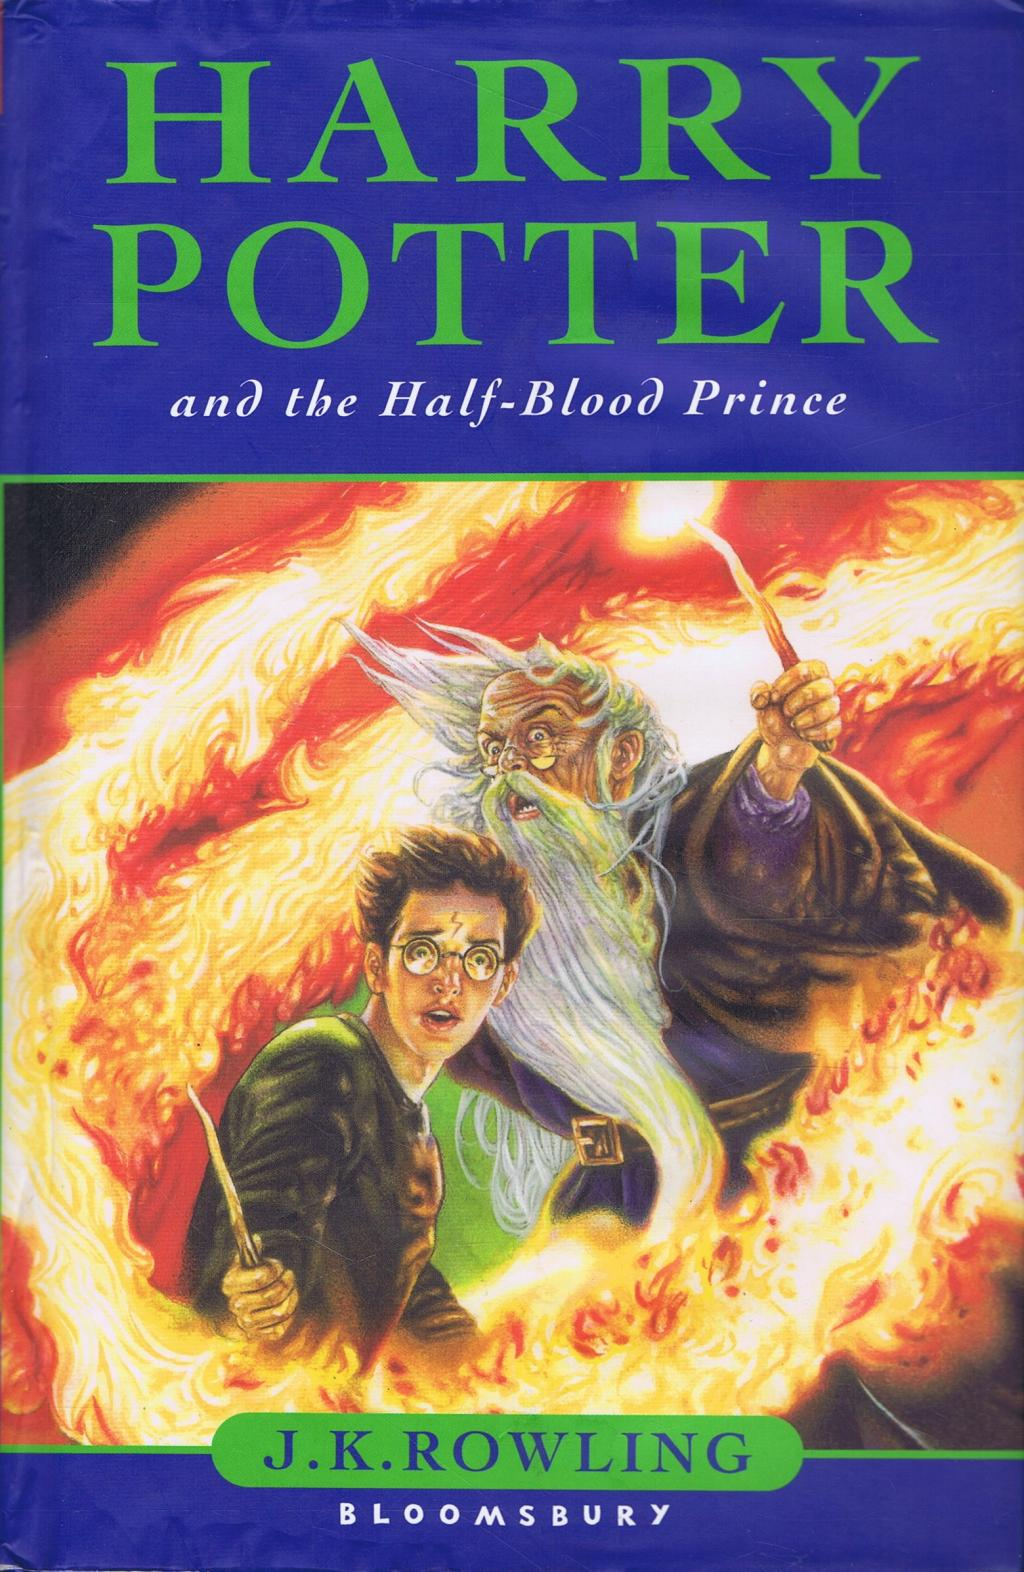 a review of harry potter and the half blood prince by jk rowling This harry potter and the half-blood prince book review was written by amanda white all reviews for: harry potter potter and the half-blood prince by jk rowling.